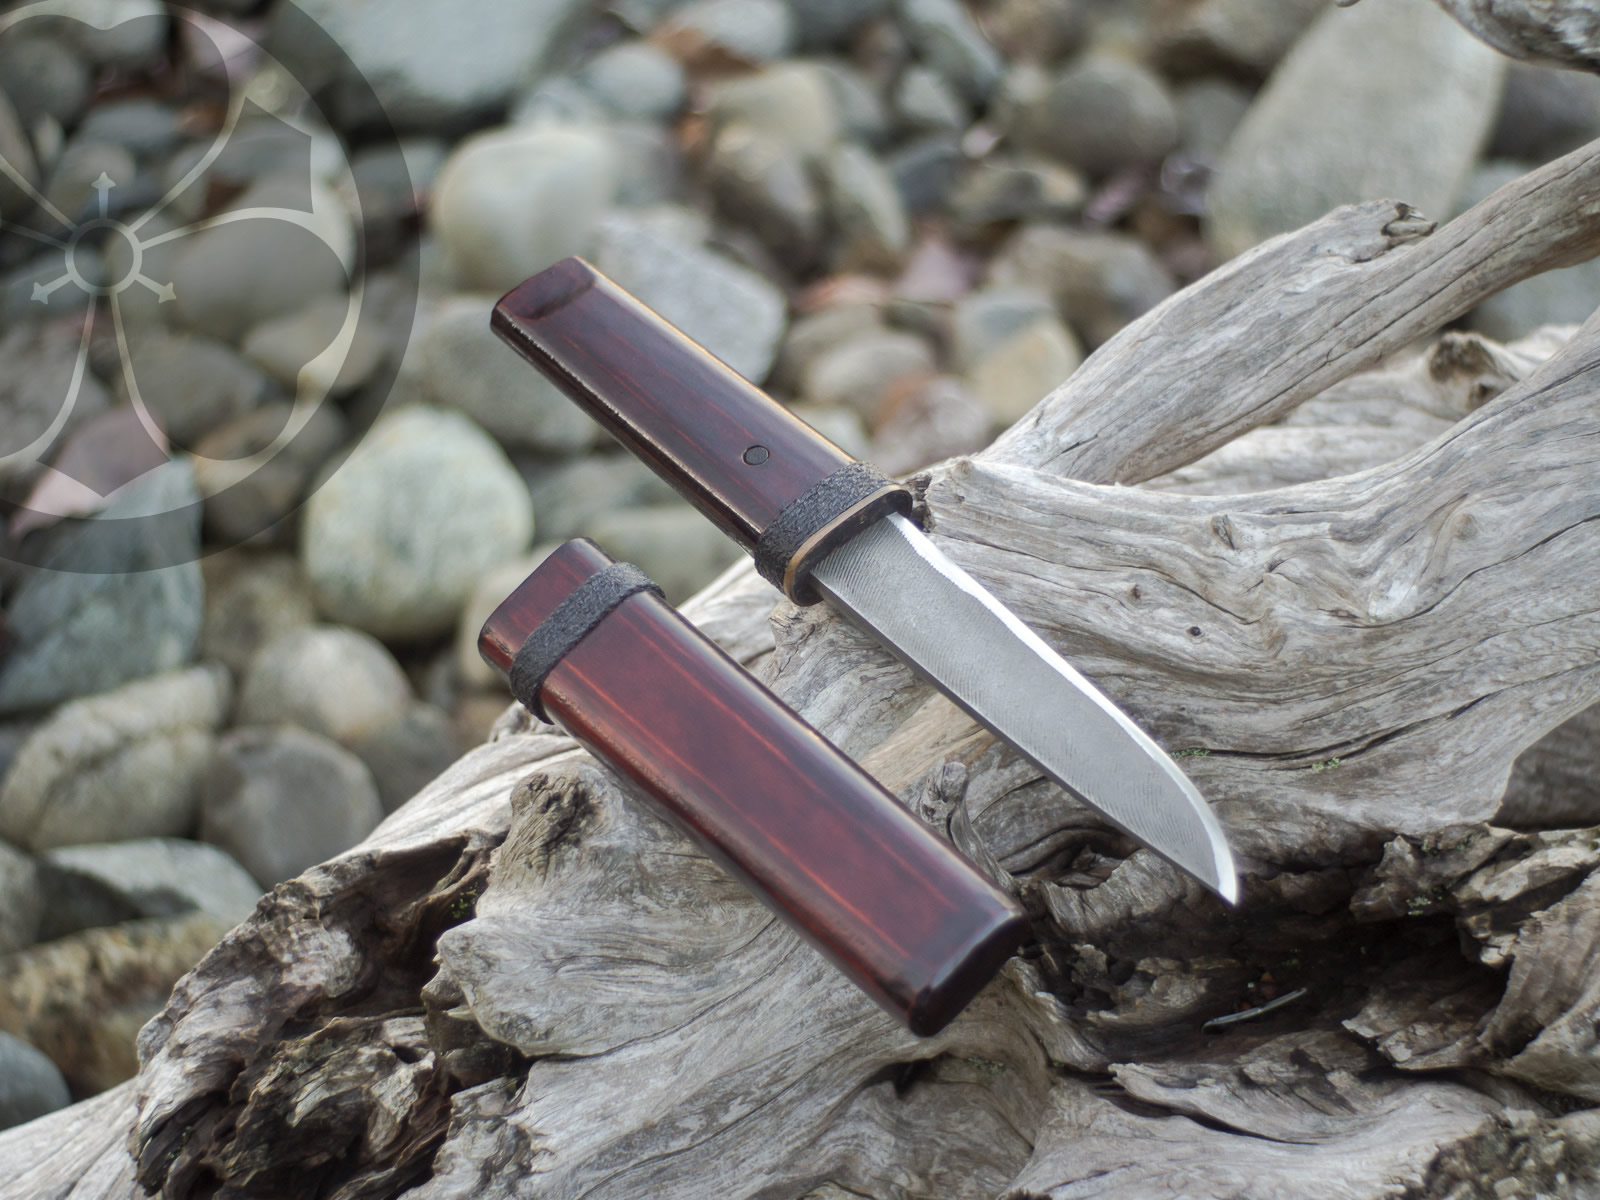 Island Blacksmith: Charcoal forged knives reclaimed from files.